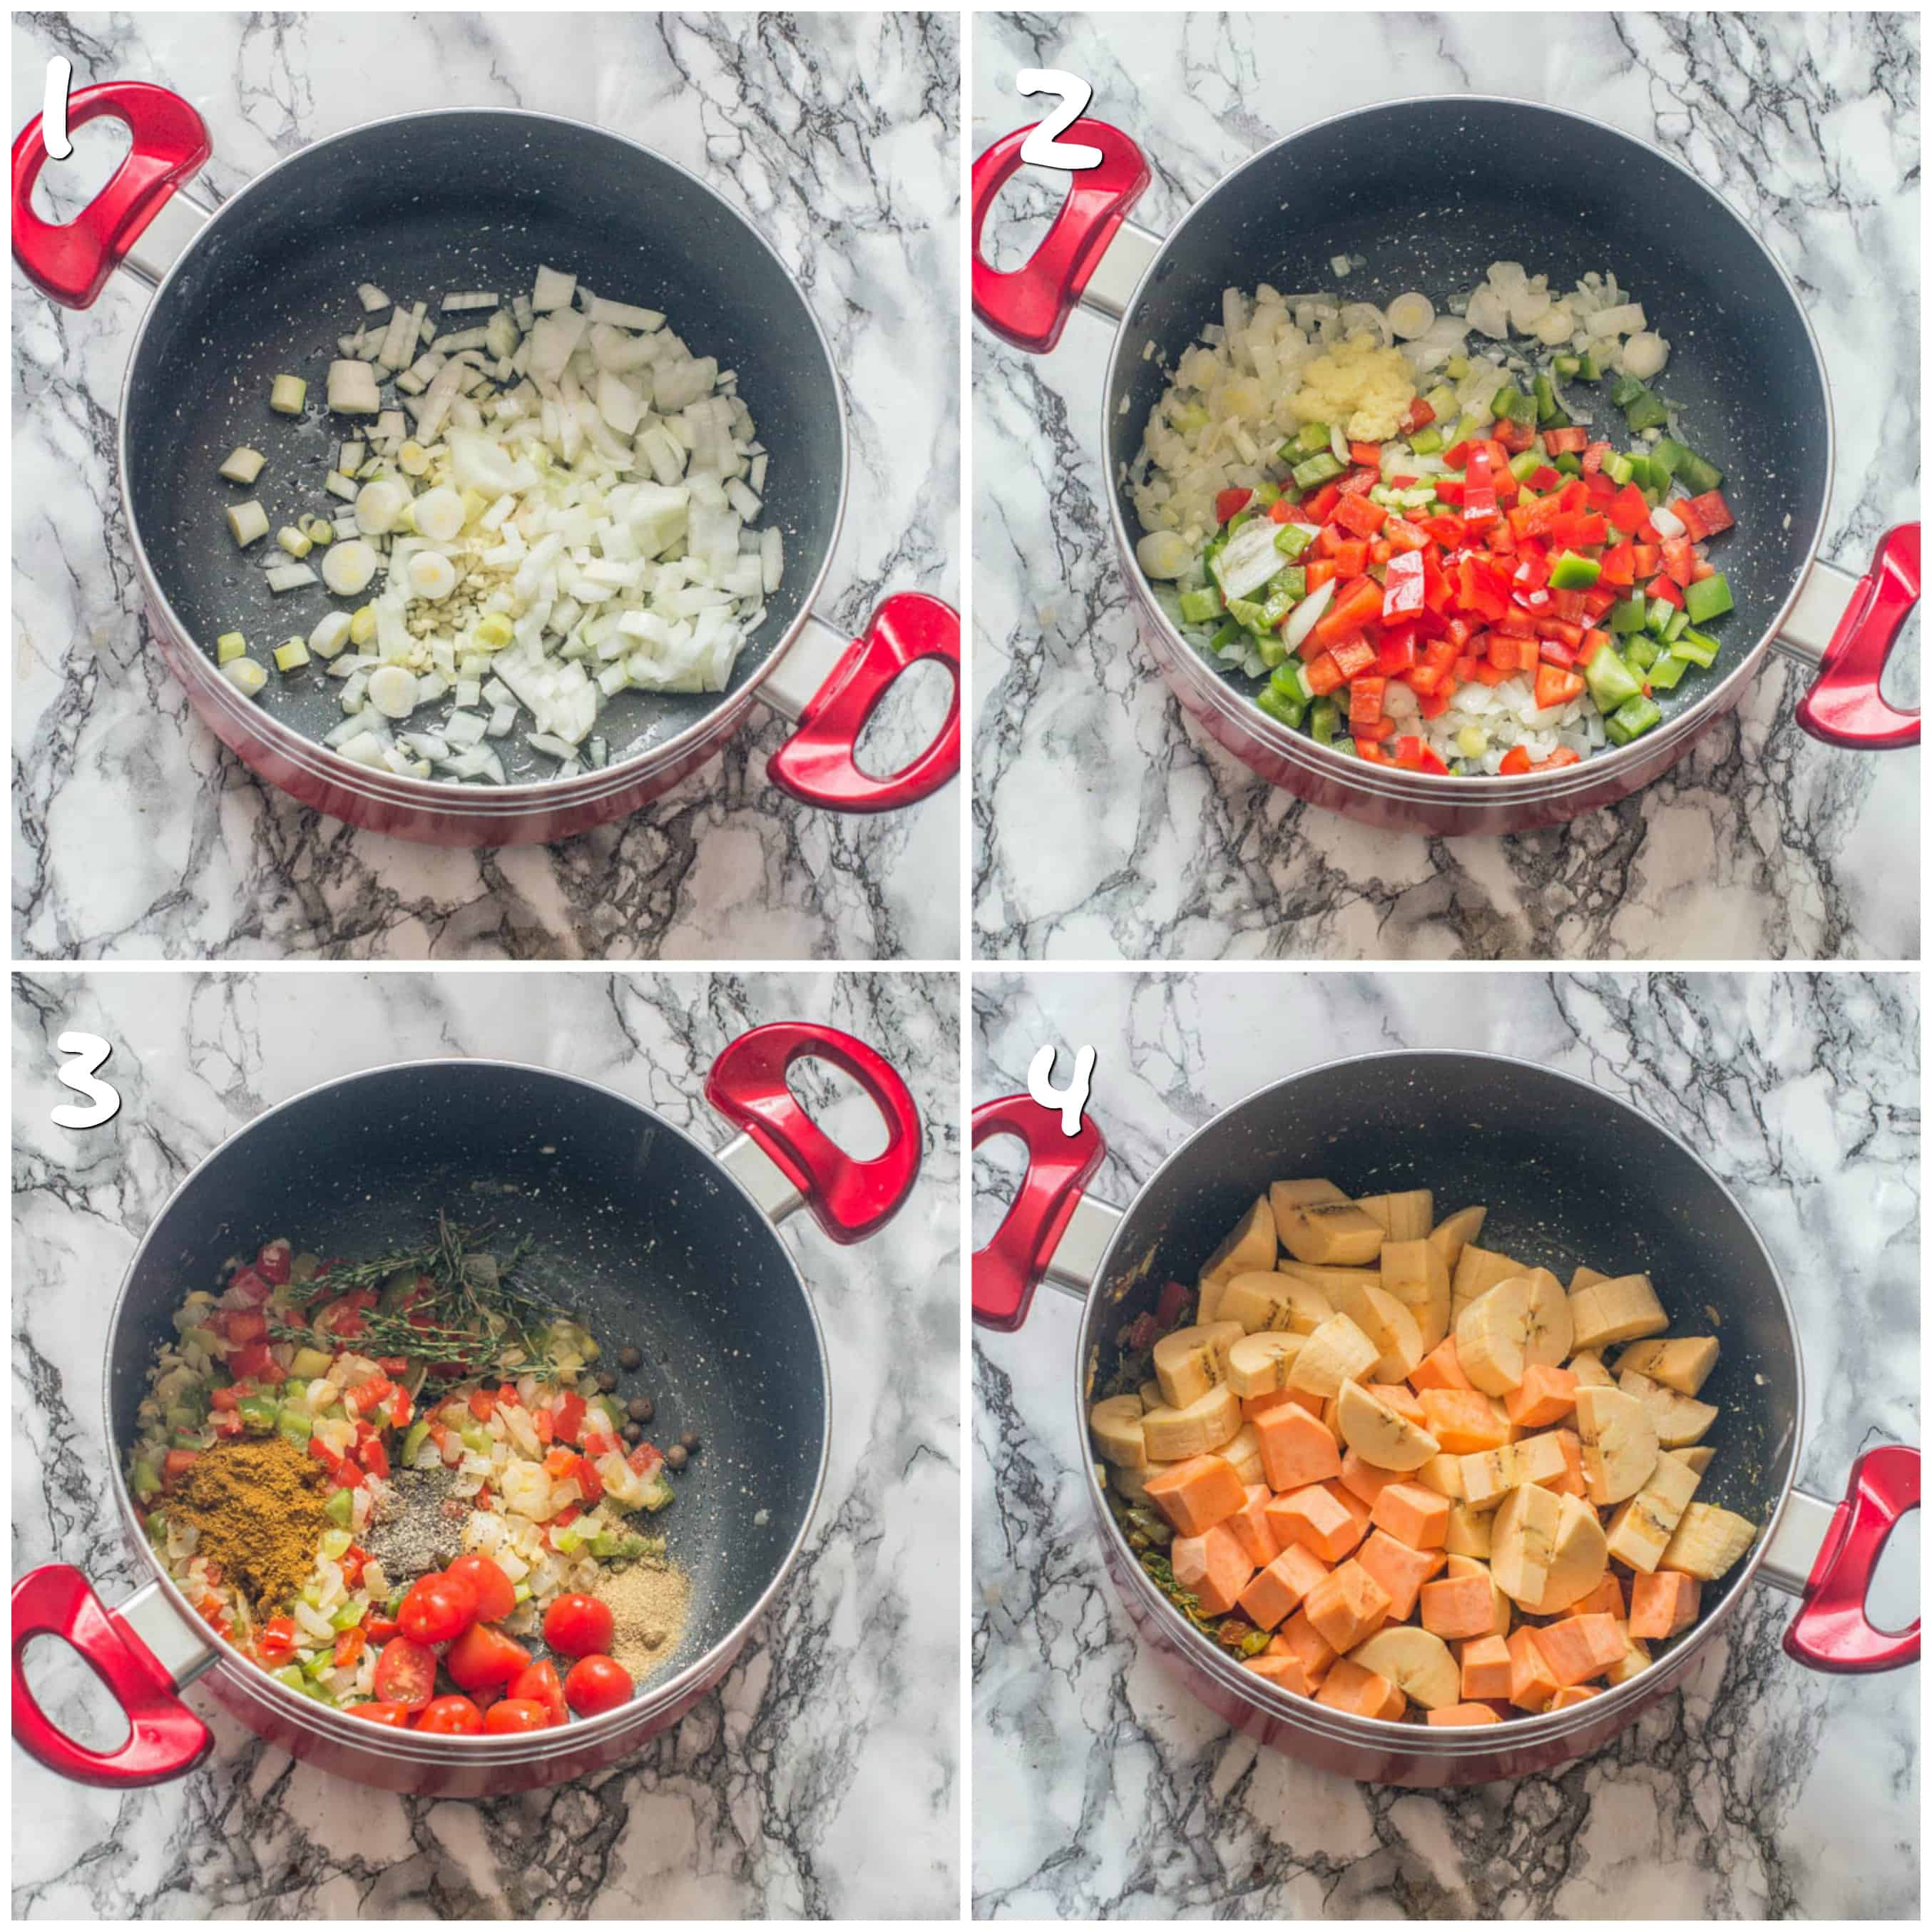 Sauteing vegetables in a pot